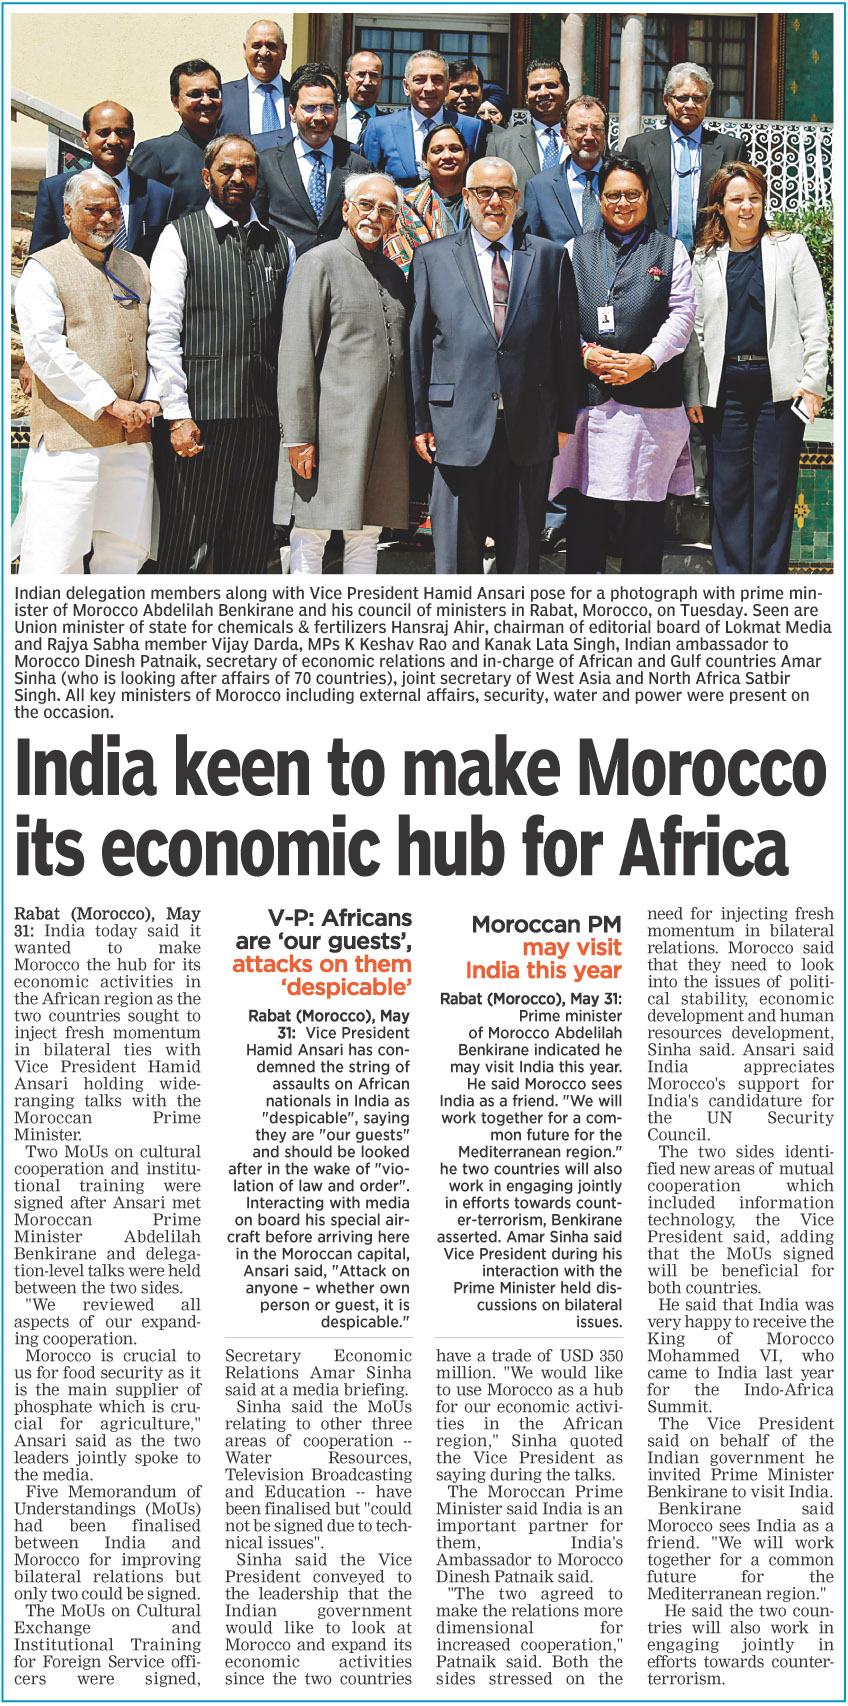 India keen to make Morocco its economic hub for Africa